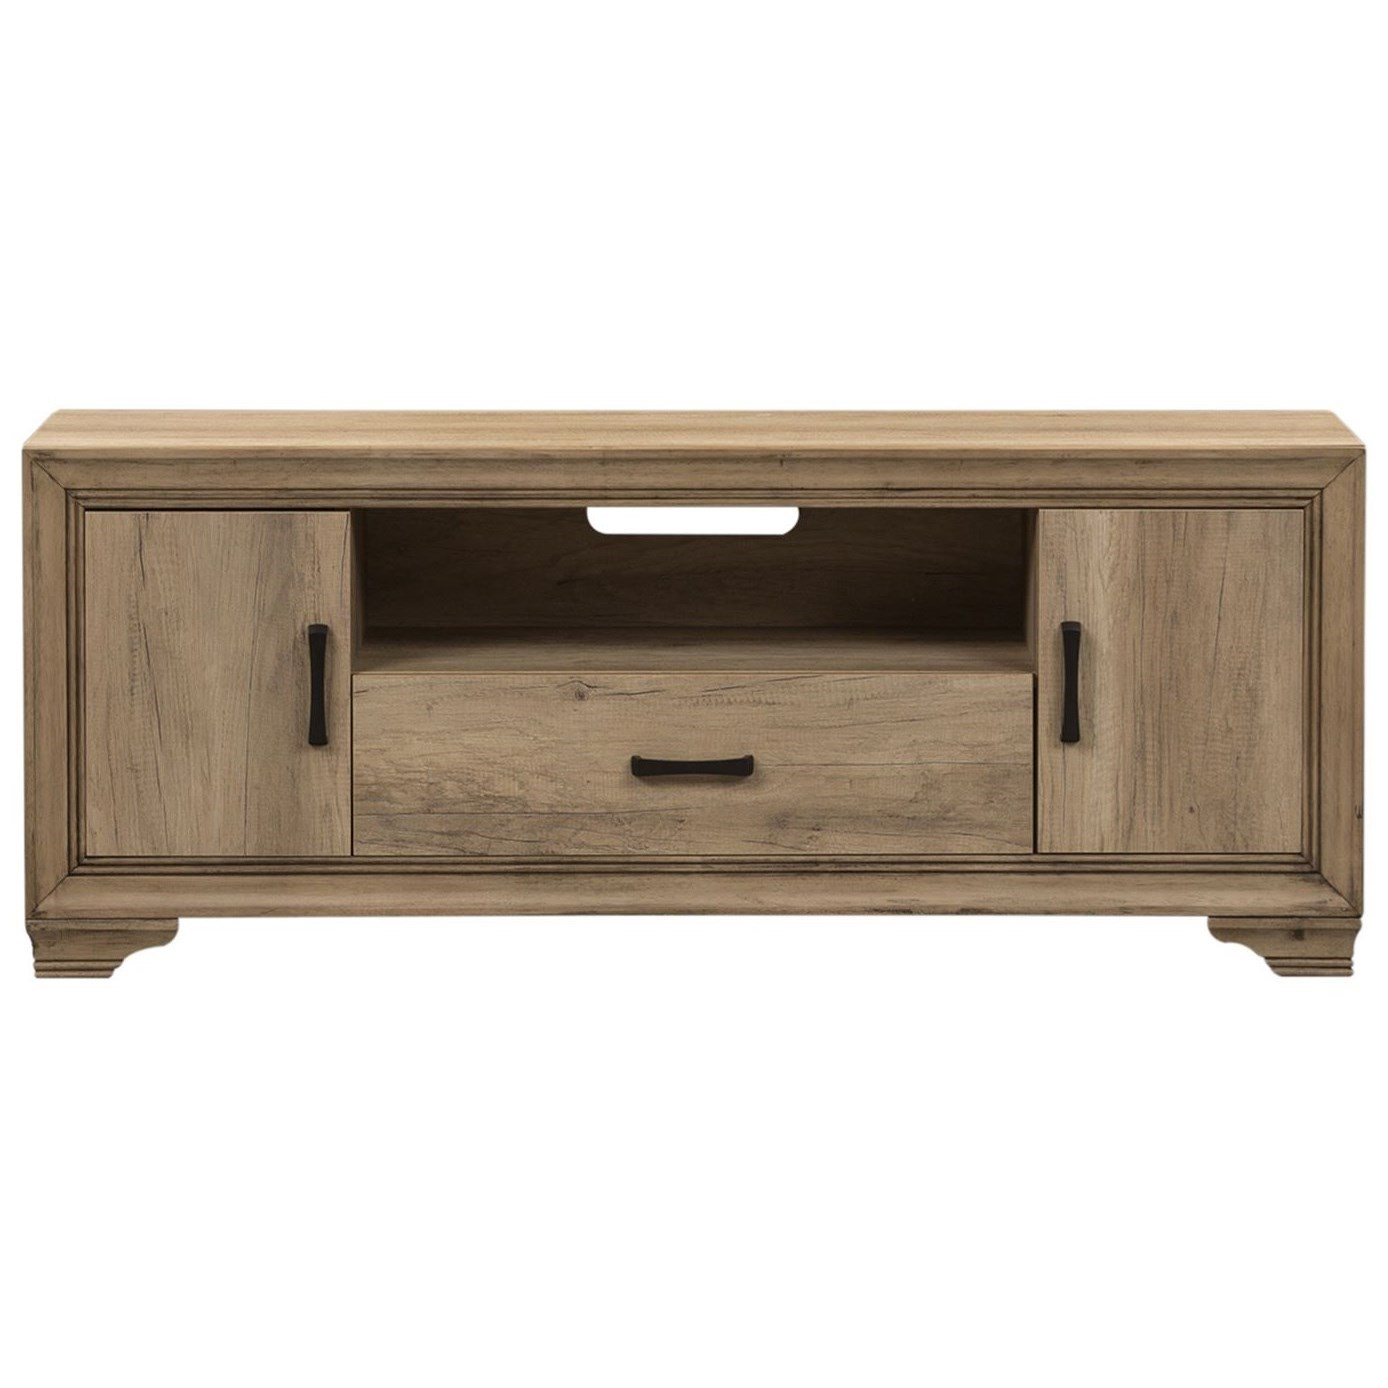 "Transitional 60"" TV Console with Adjustable Shelves"